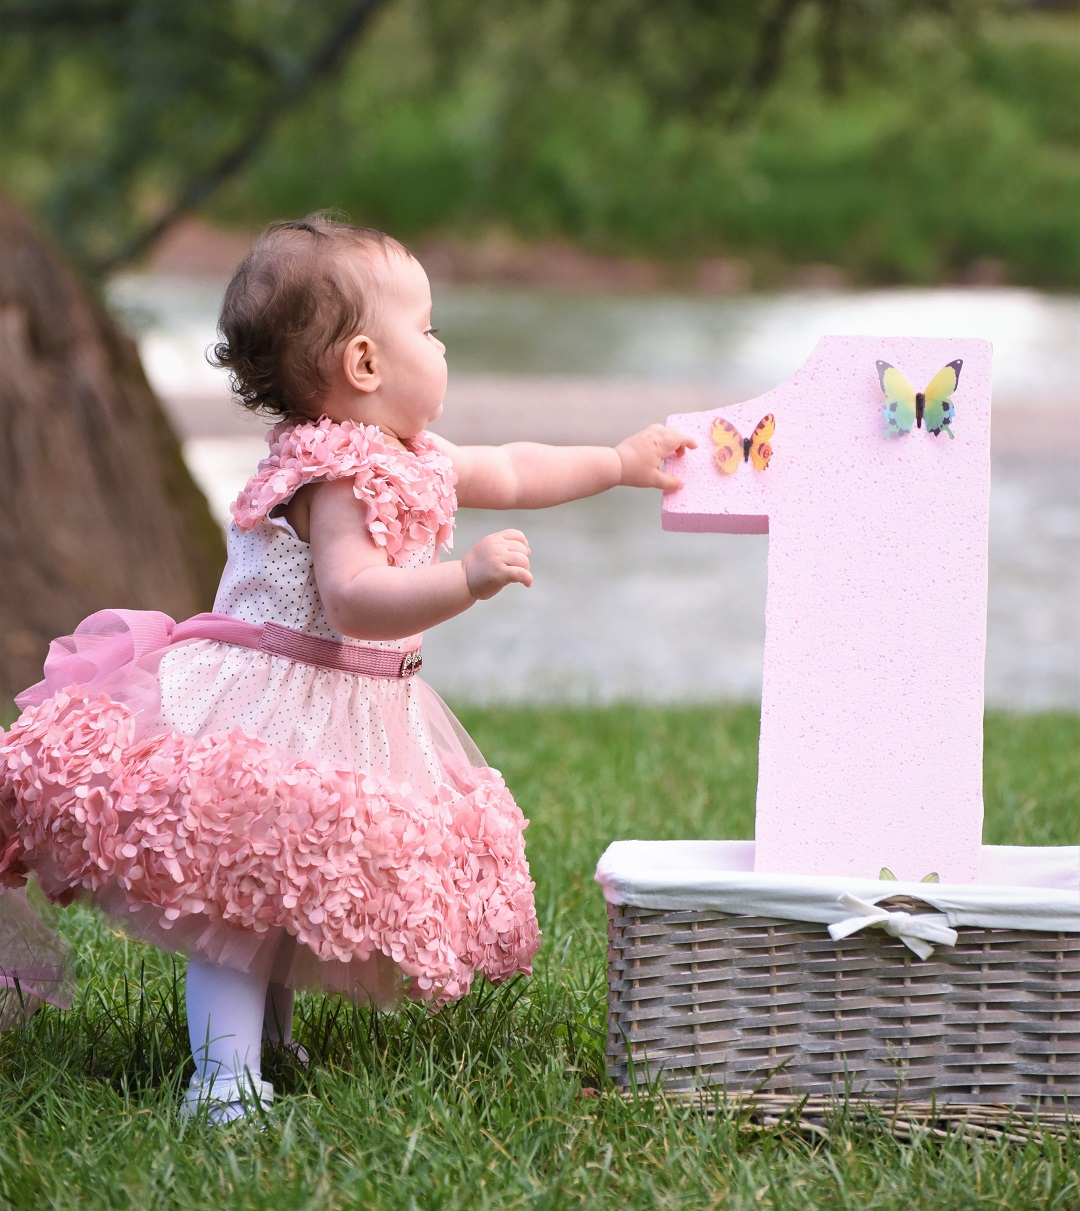 Baby Girl In Pink Dress First Birthday Outside Grass